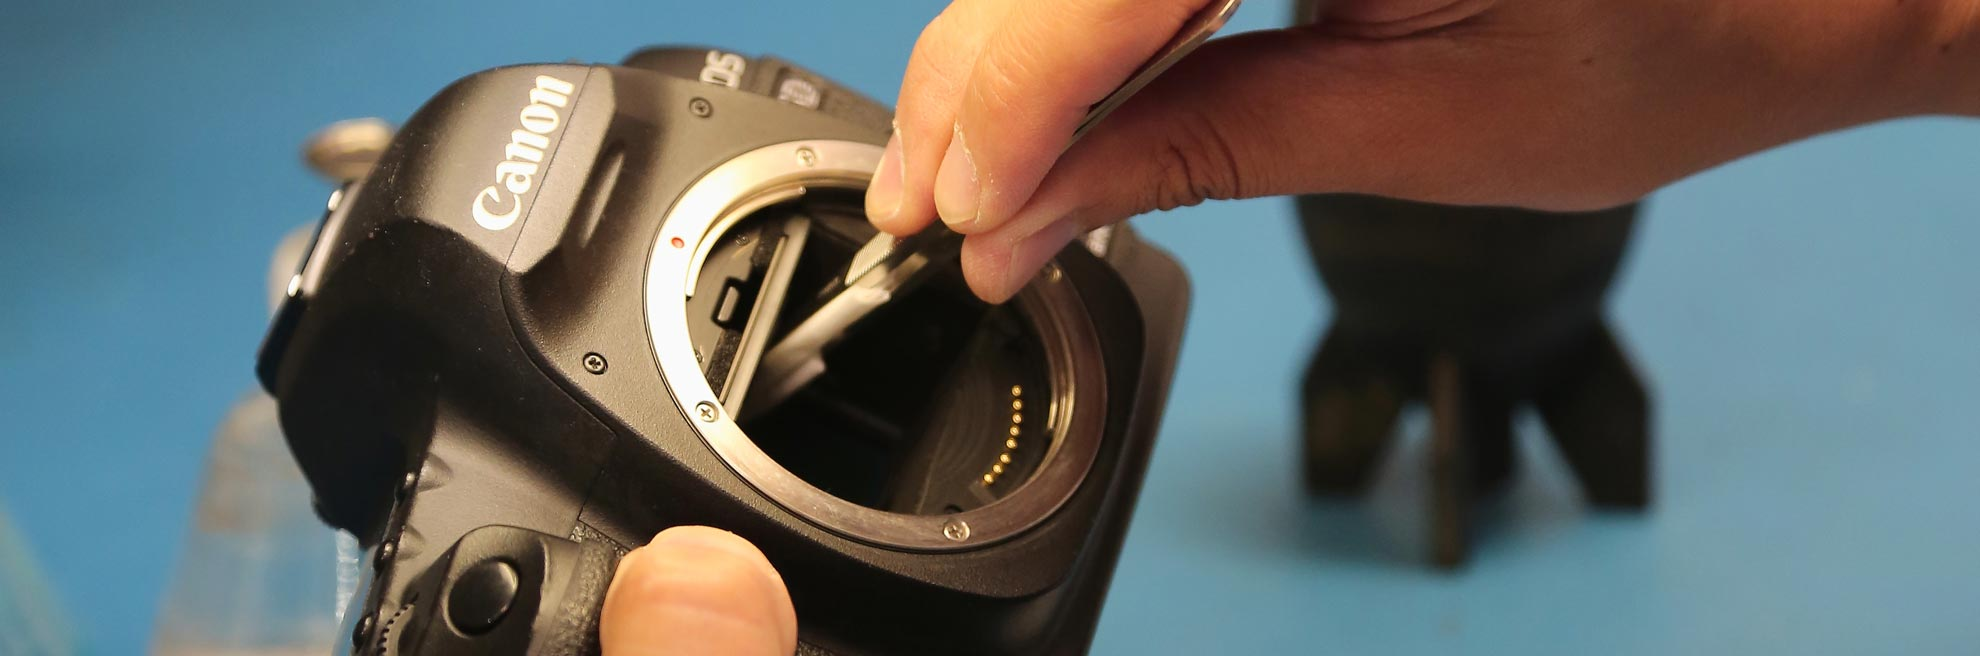 EOS Digital SLR Maintenance Service Tech